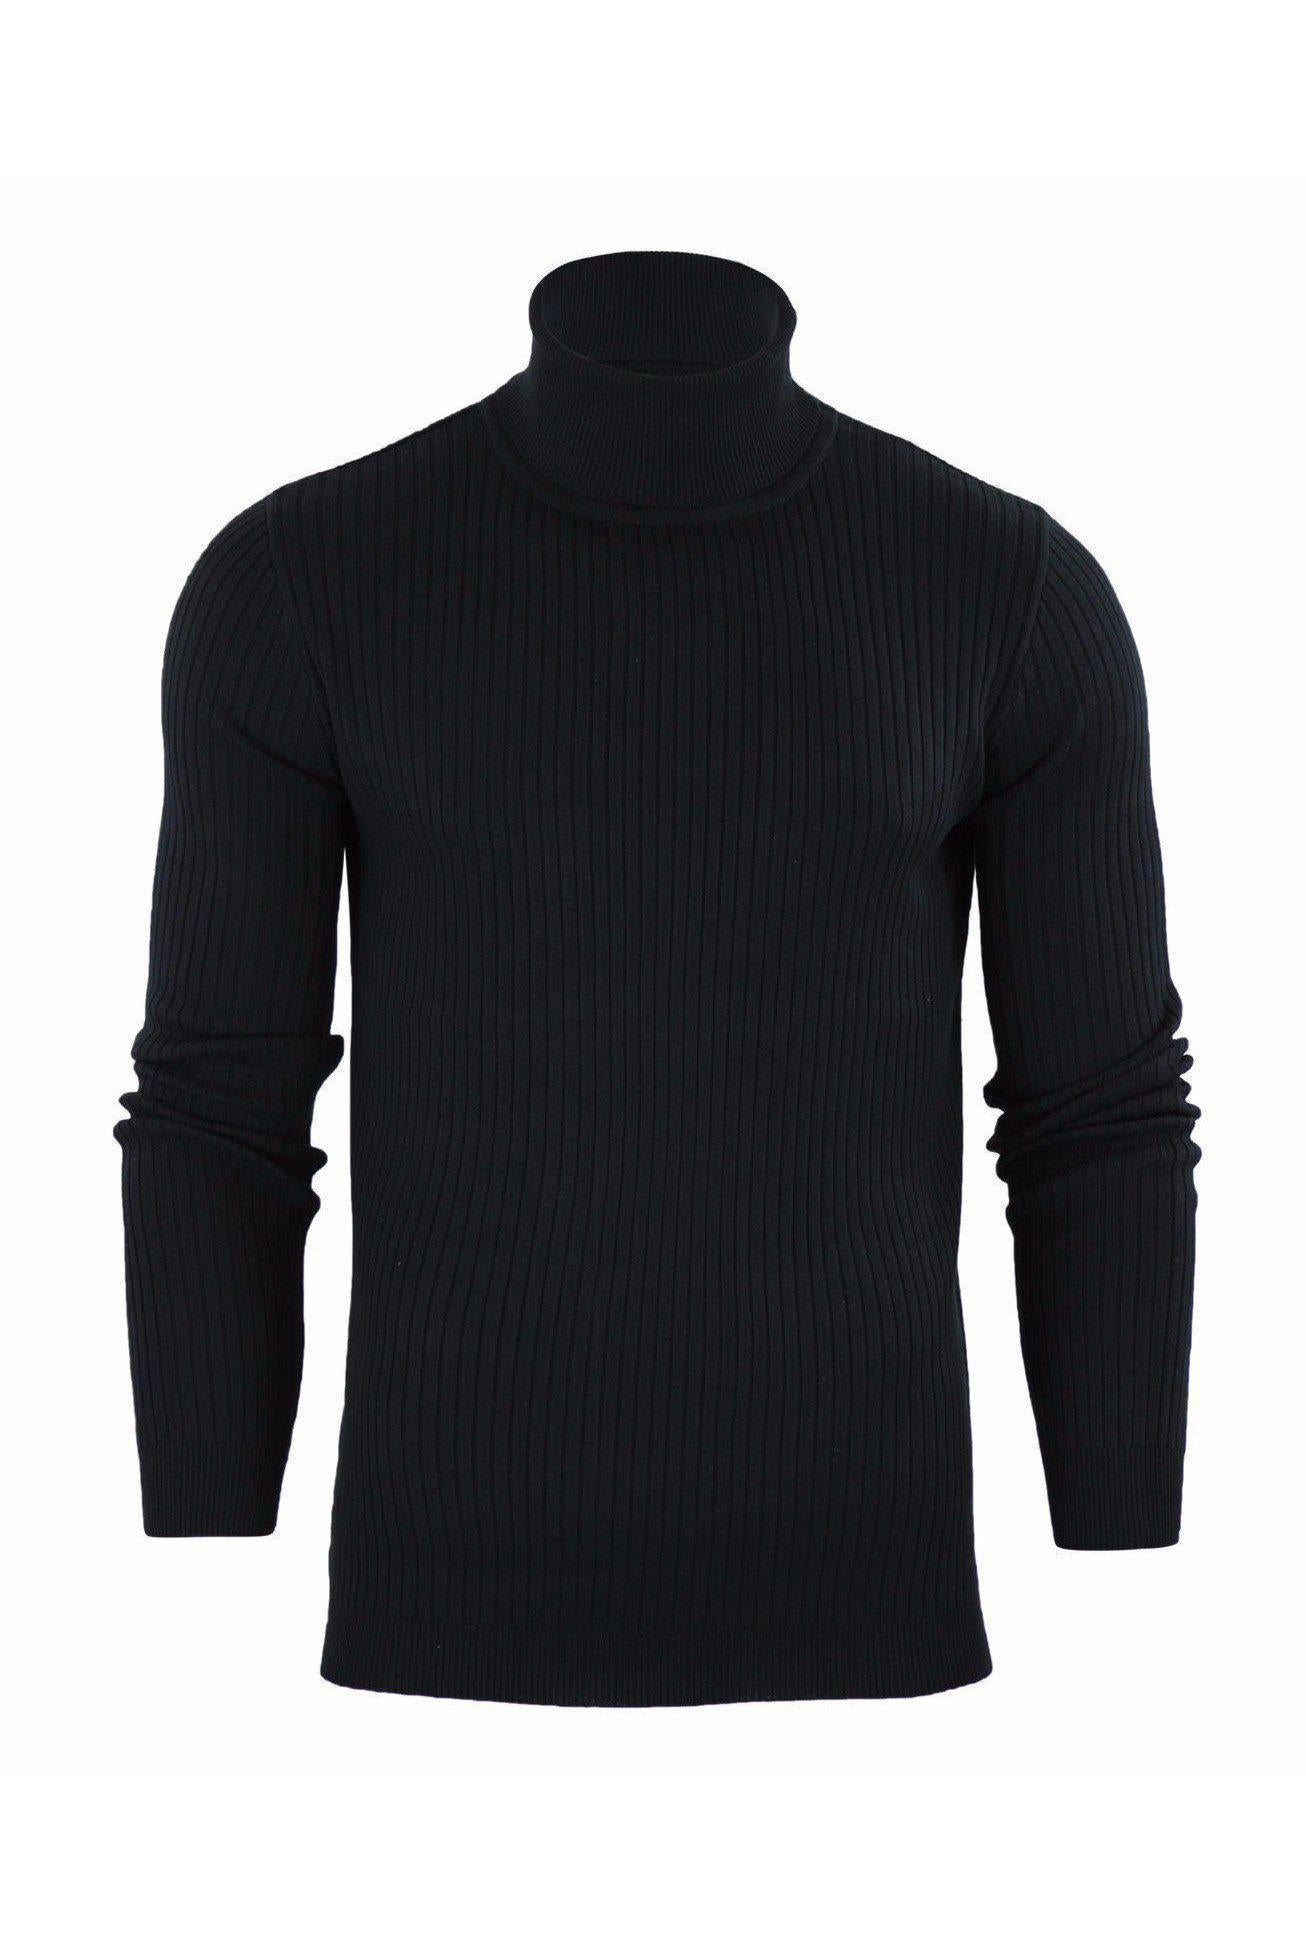 Knitwear - 0 Ribbed Roll Neck Lightweight Knit Black